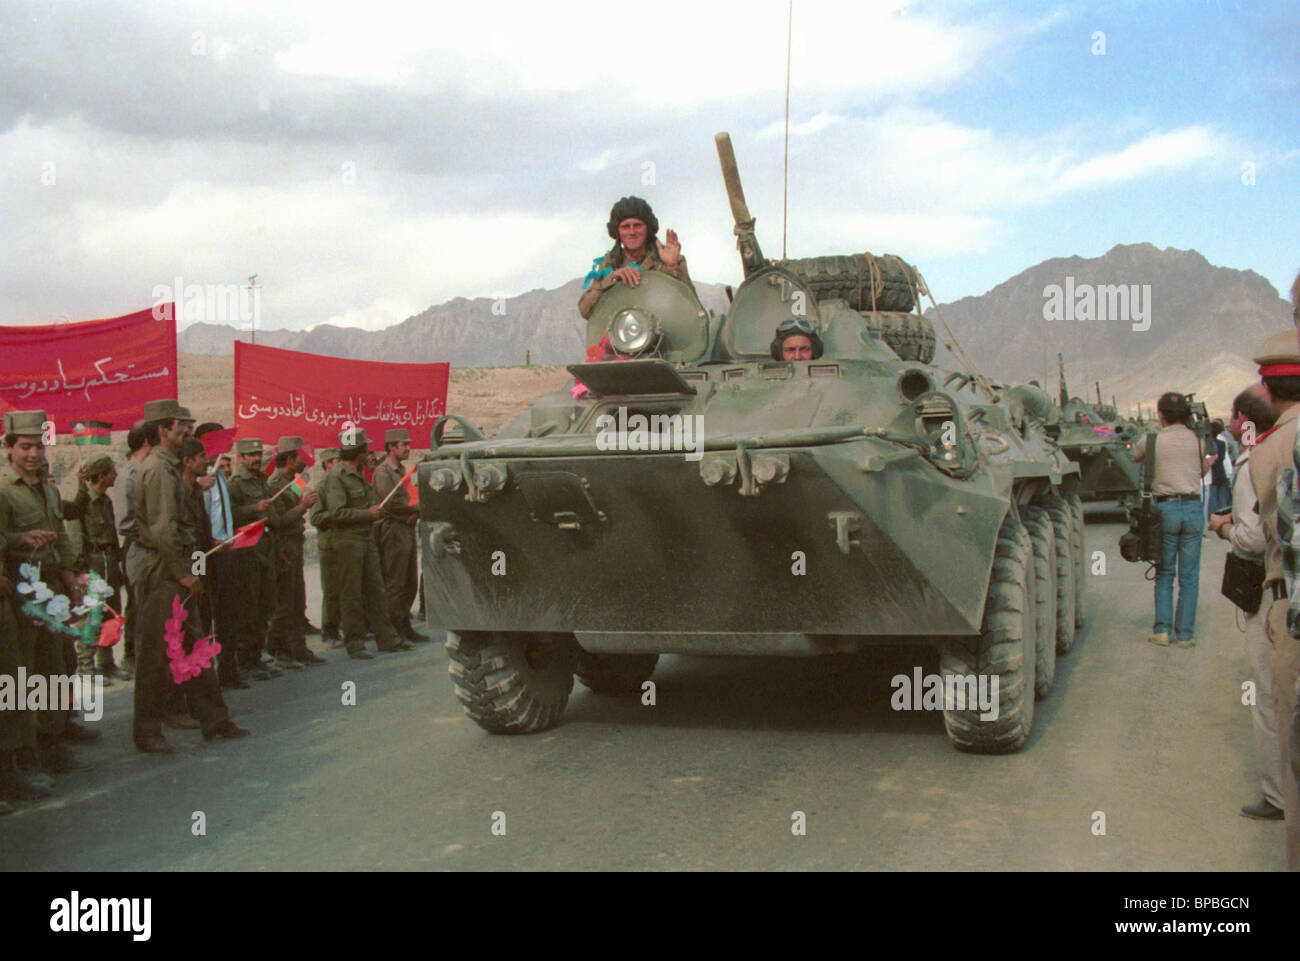 Soviet Afghanistan war - Page 6 Withdrawal-of-soviet-troops-from-afghanistan-1988-BPBGCN